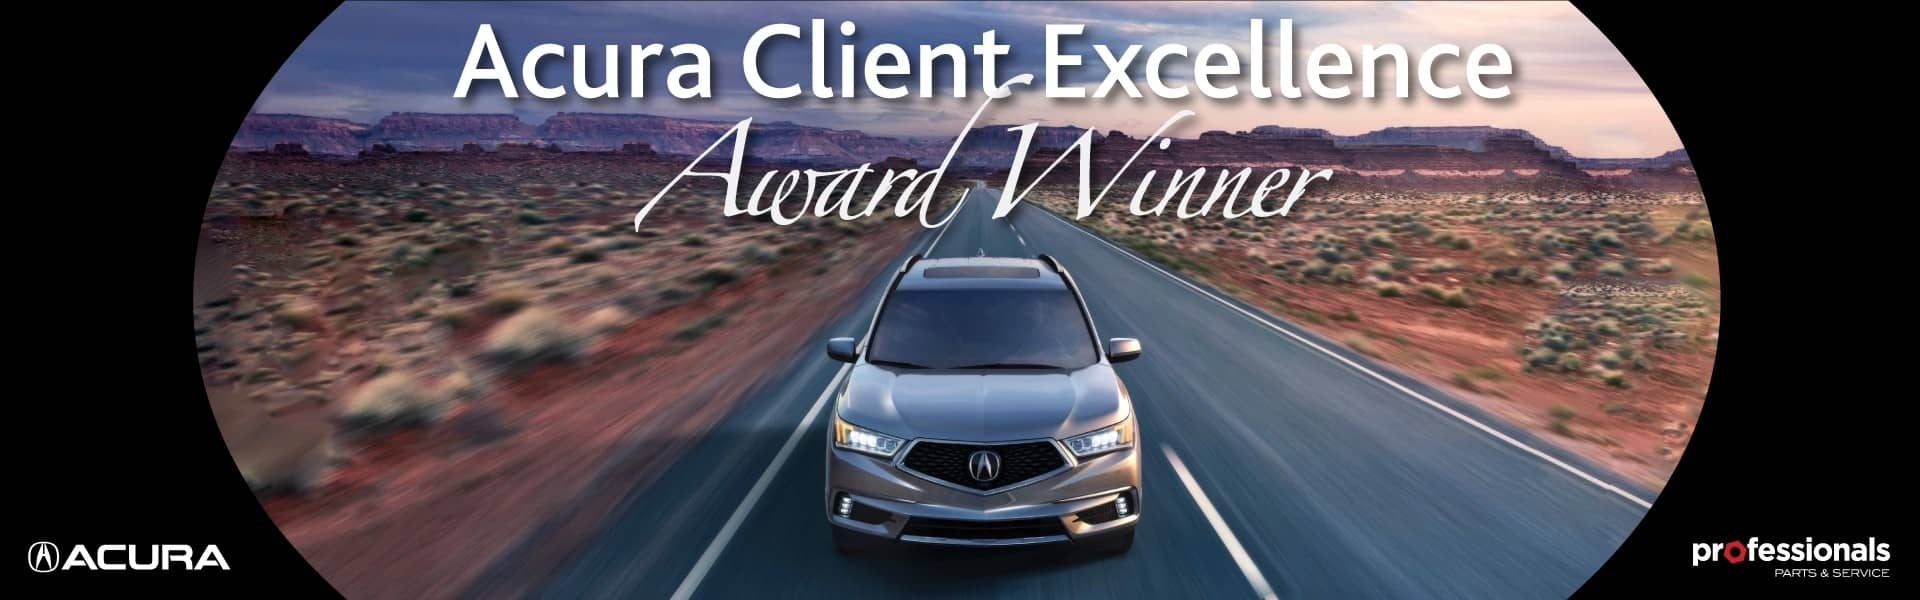 2016 Acura Acura Client Excellence Award Banner